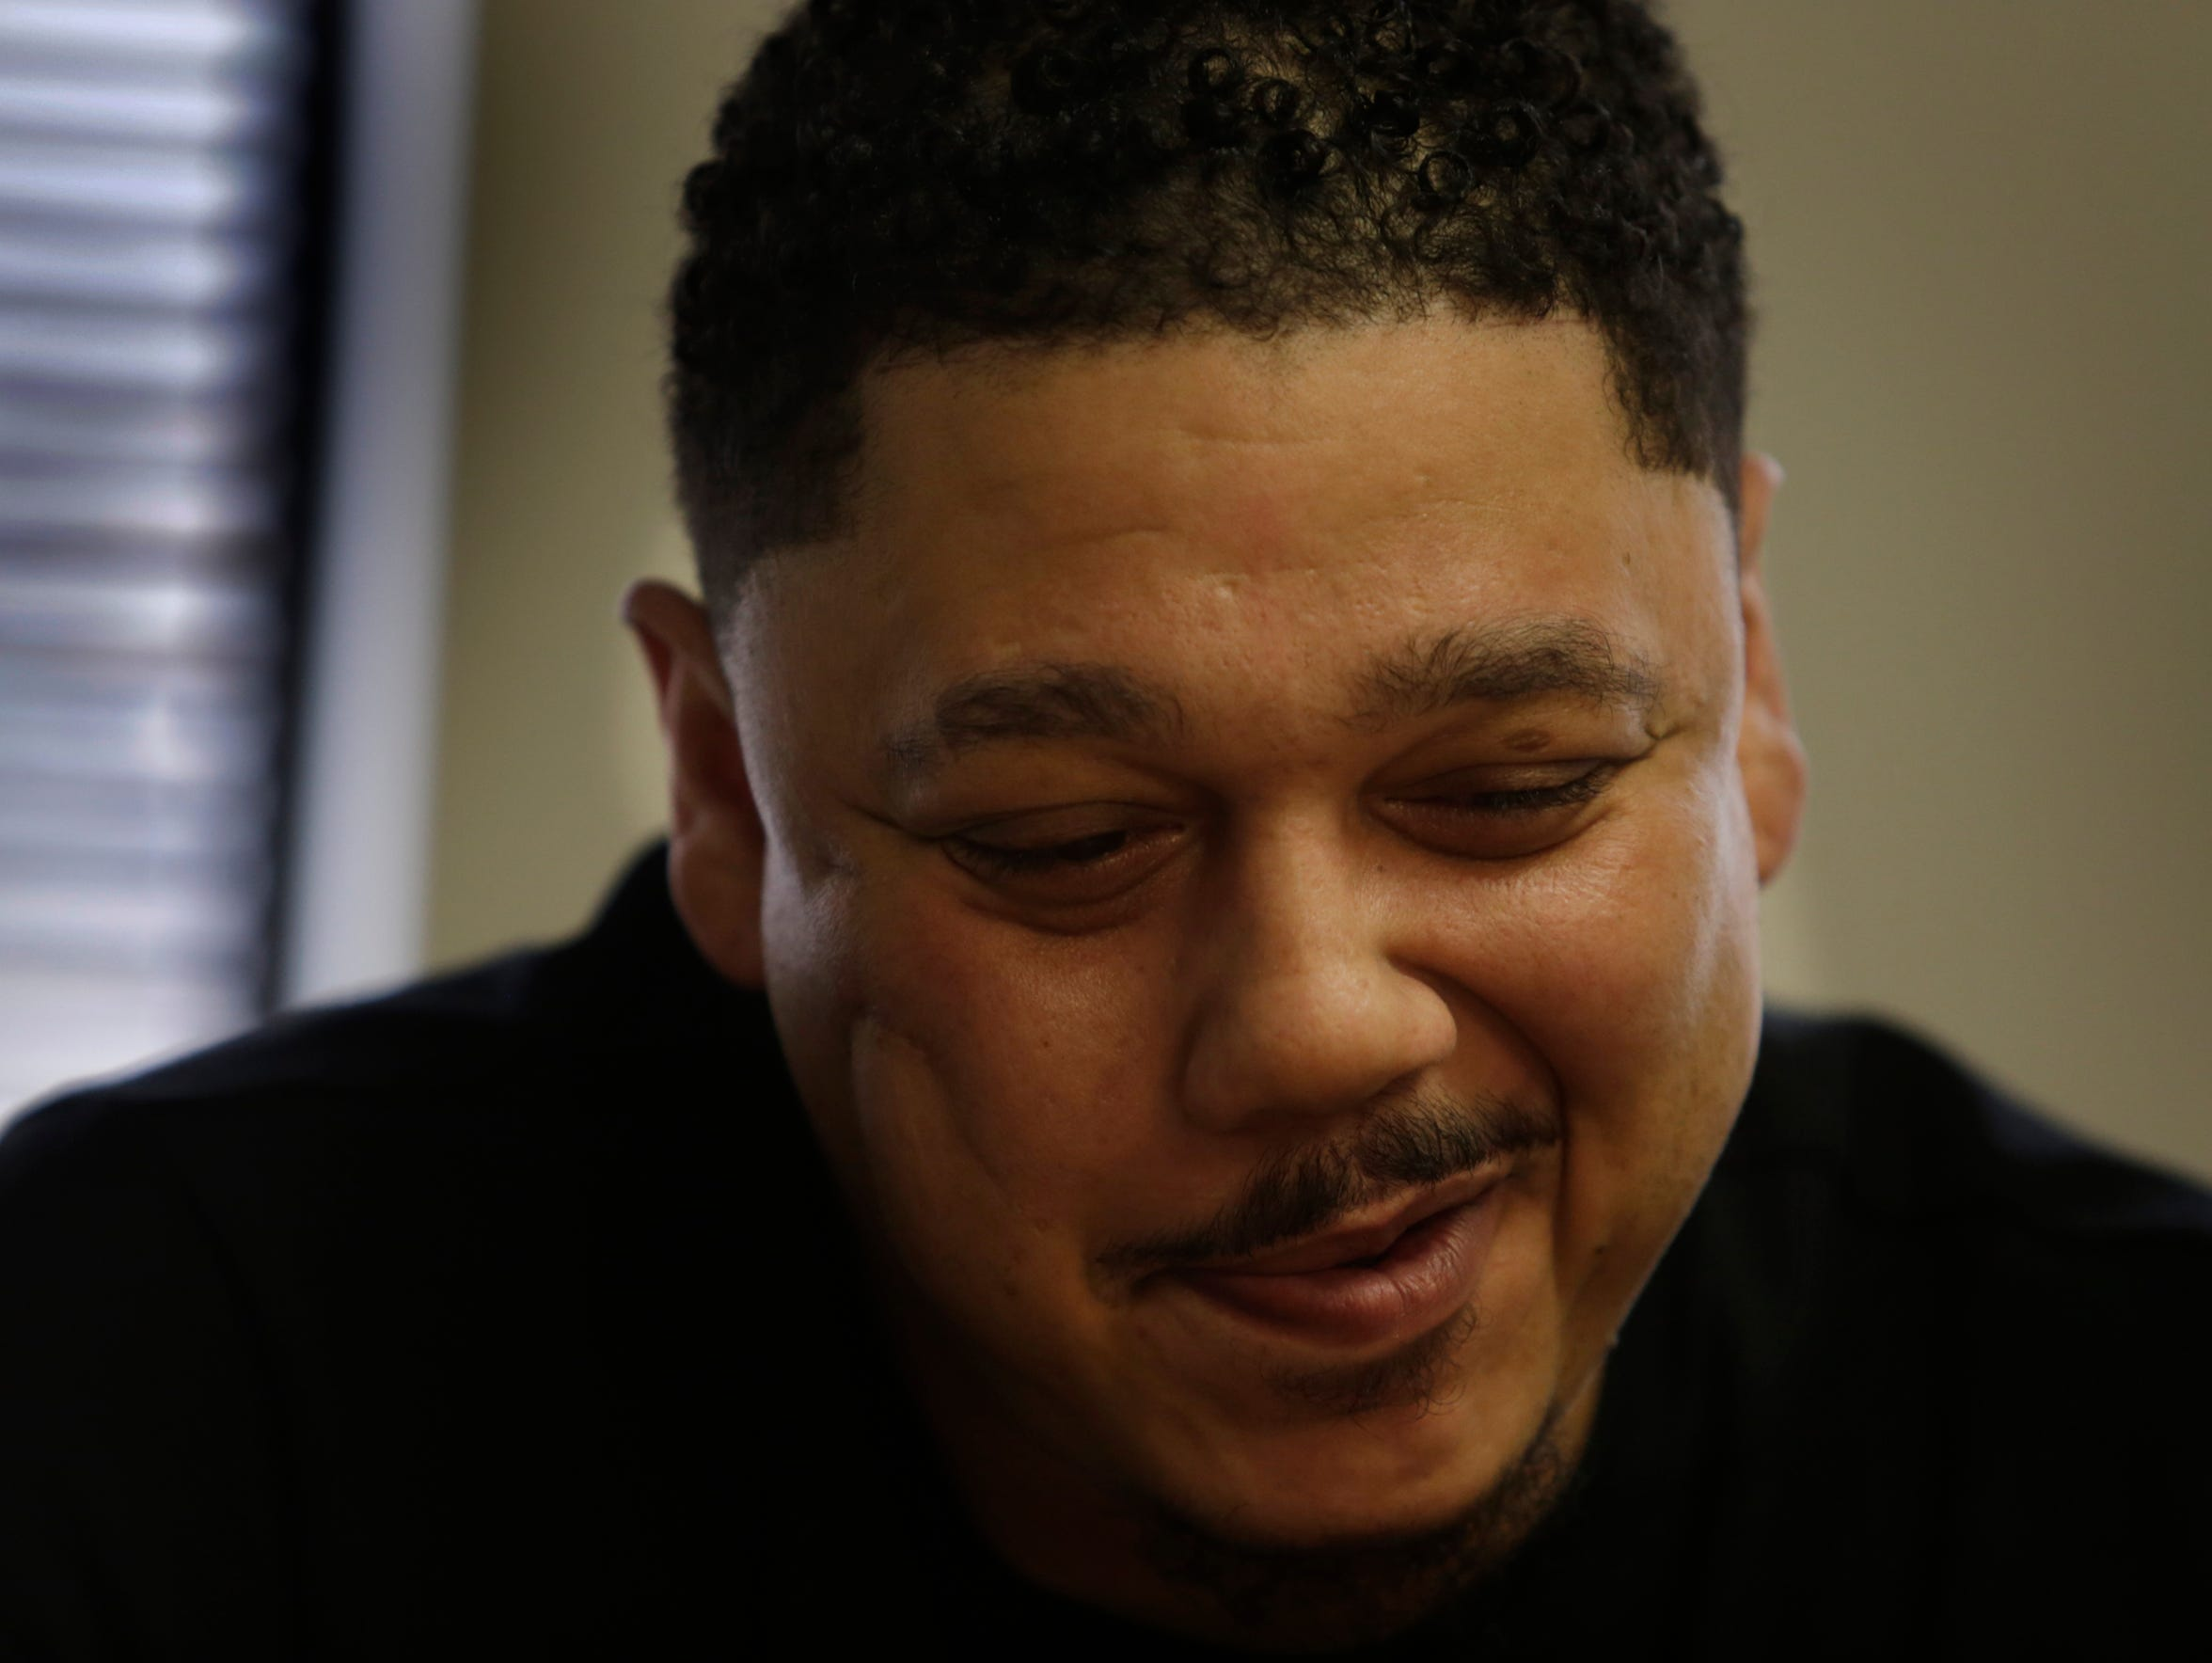 Detroit's Lamar McGaughy, 38, smiles as he speaks about